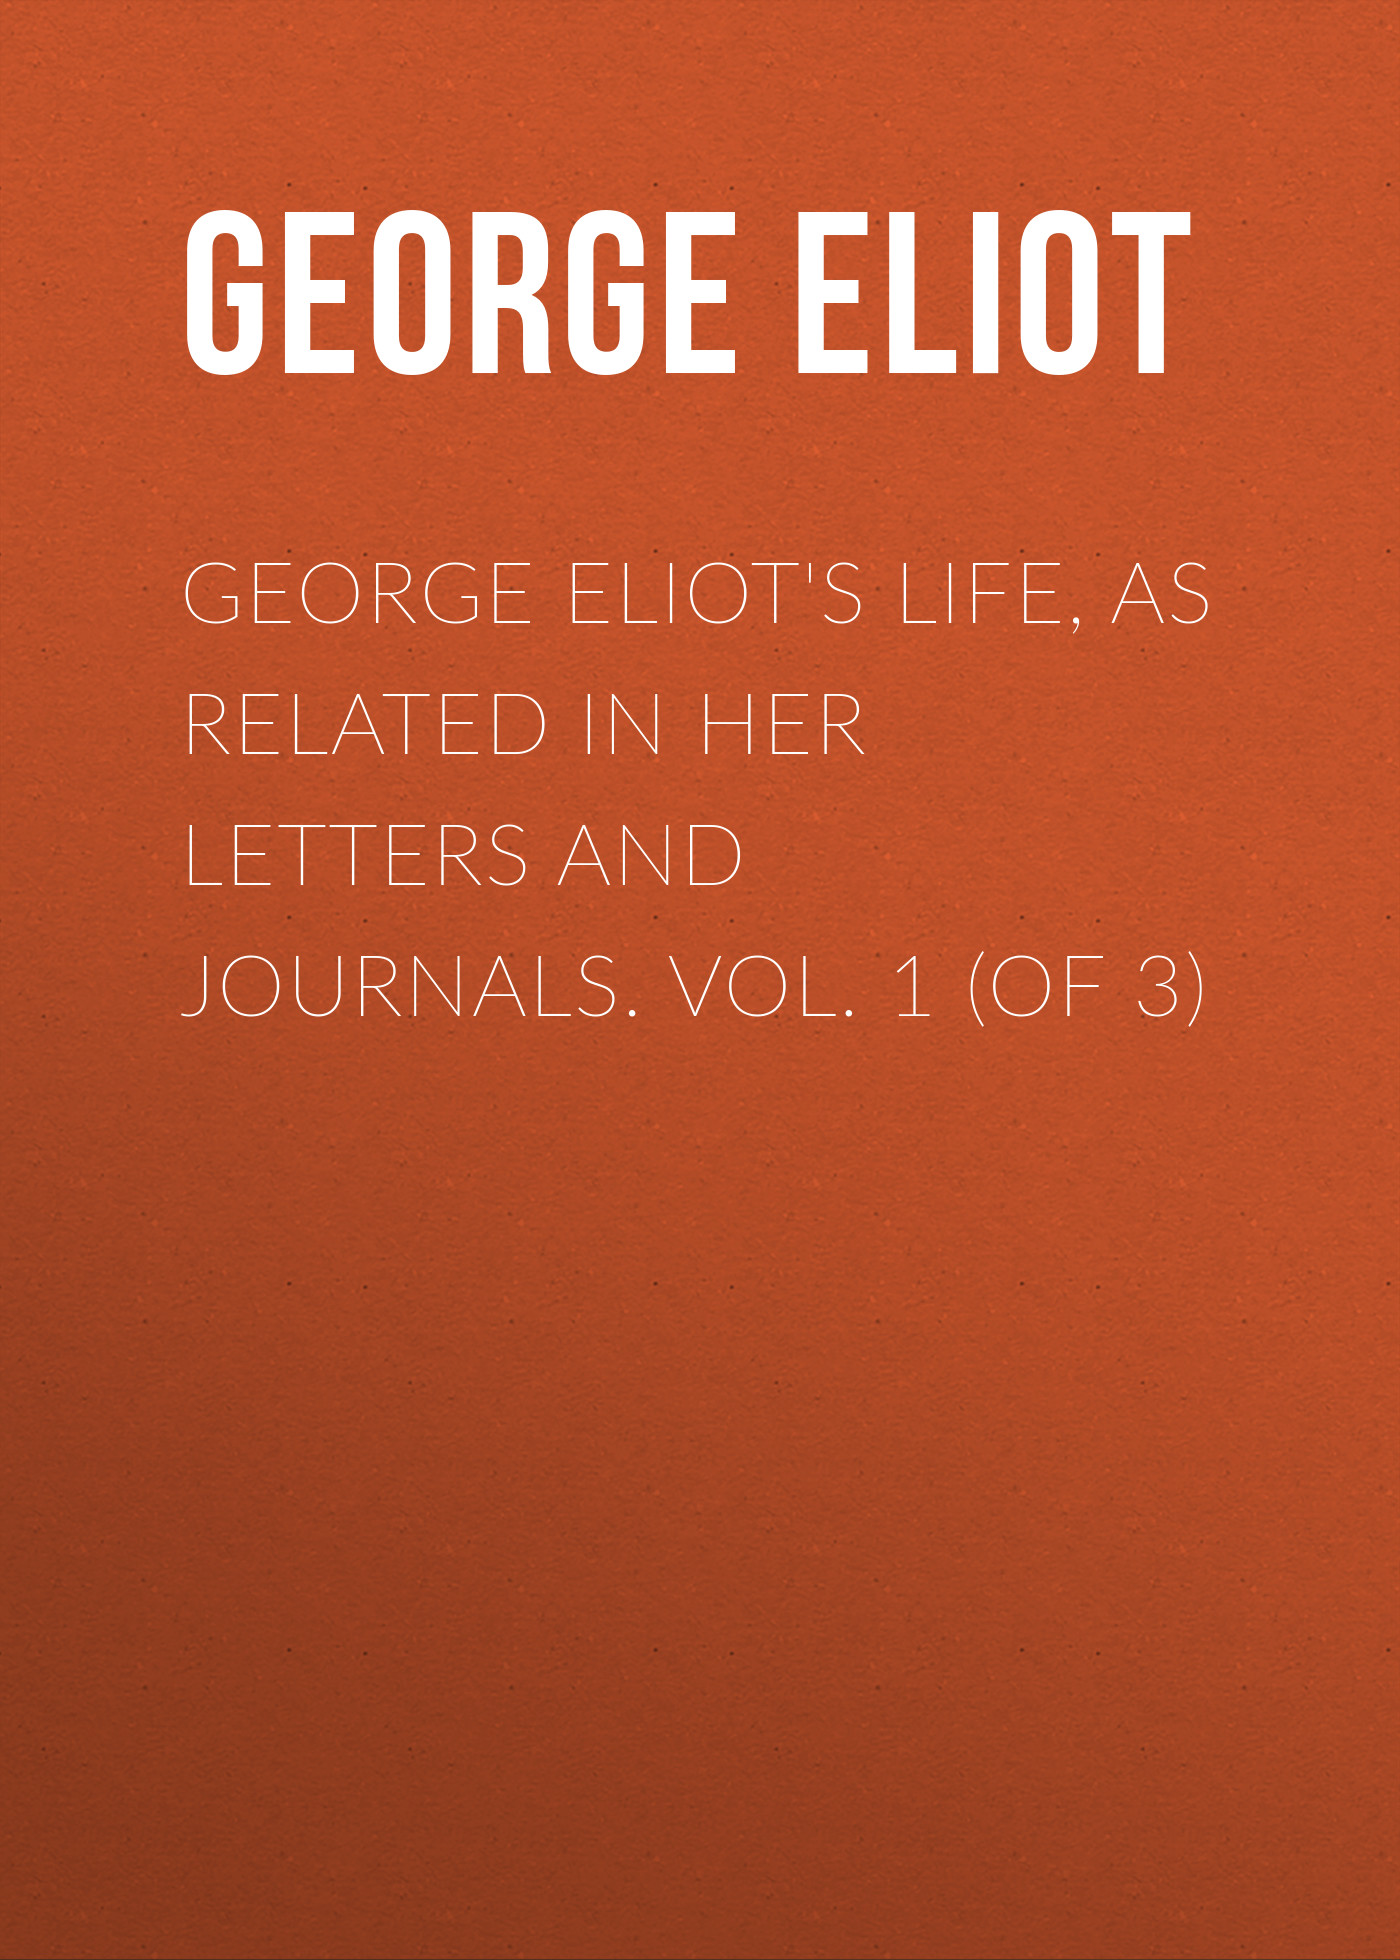 Джордж Элиот George Eliot's Life, as Related in Her Letters and Journals. Vol. 1 (of 3)